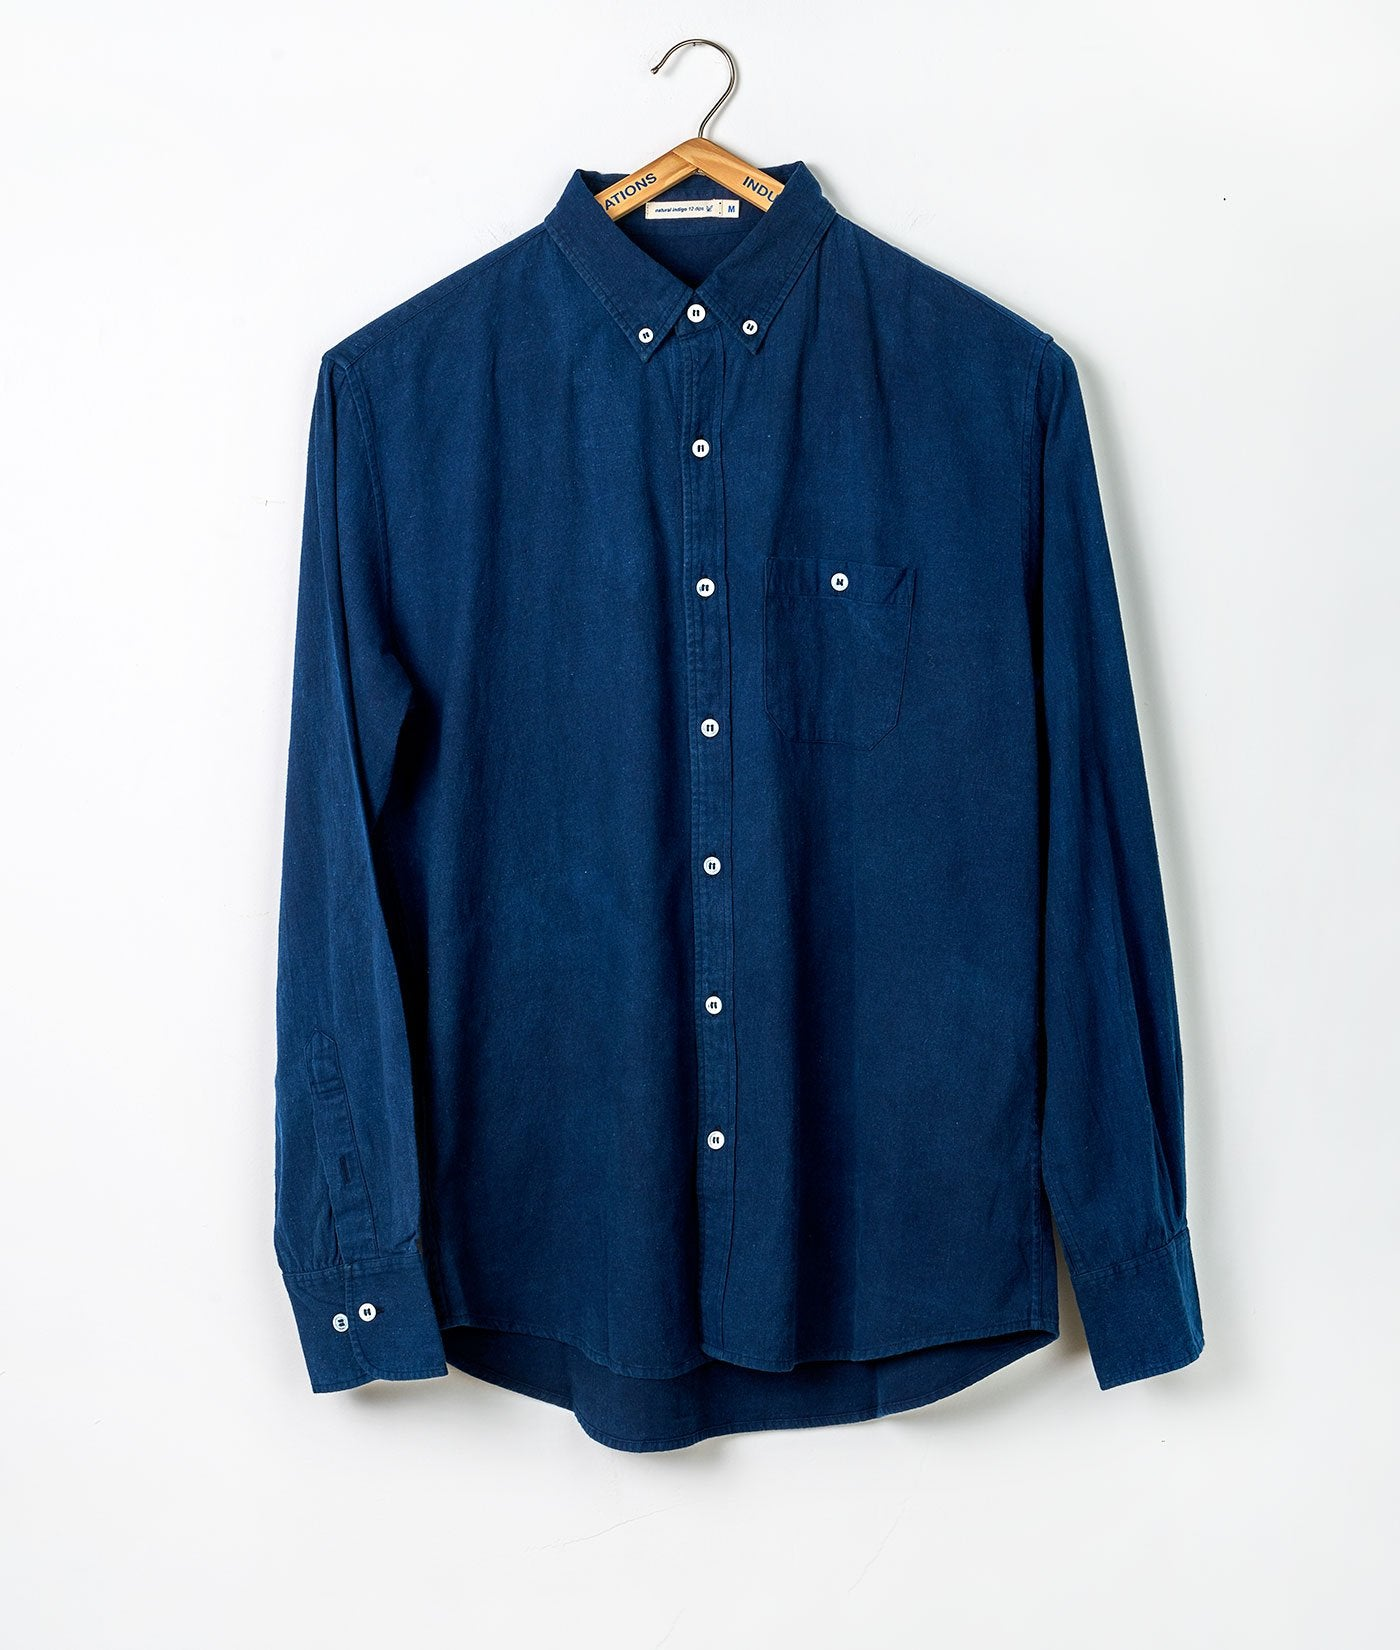 Classic Madras Shirt - Heavy Long Sleeve